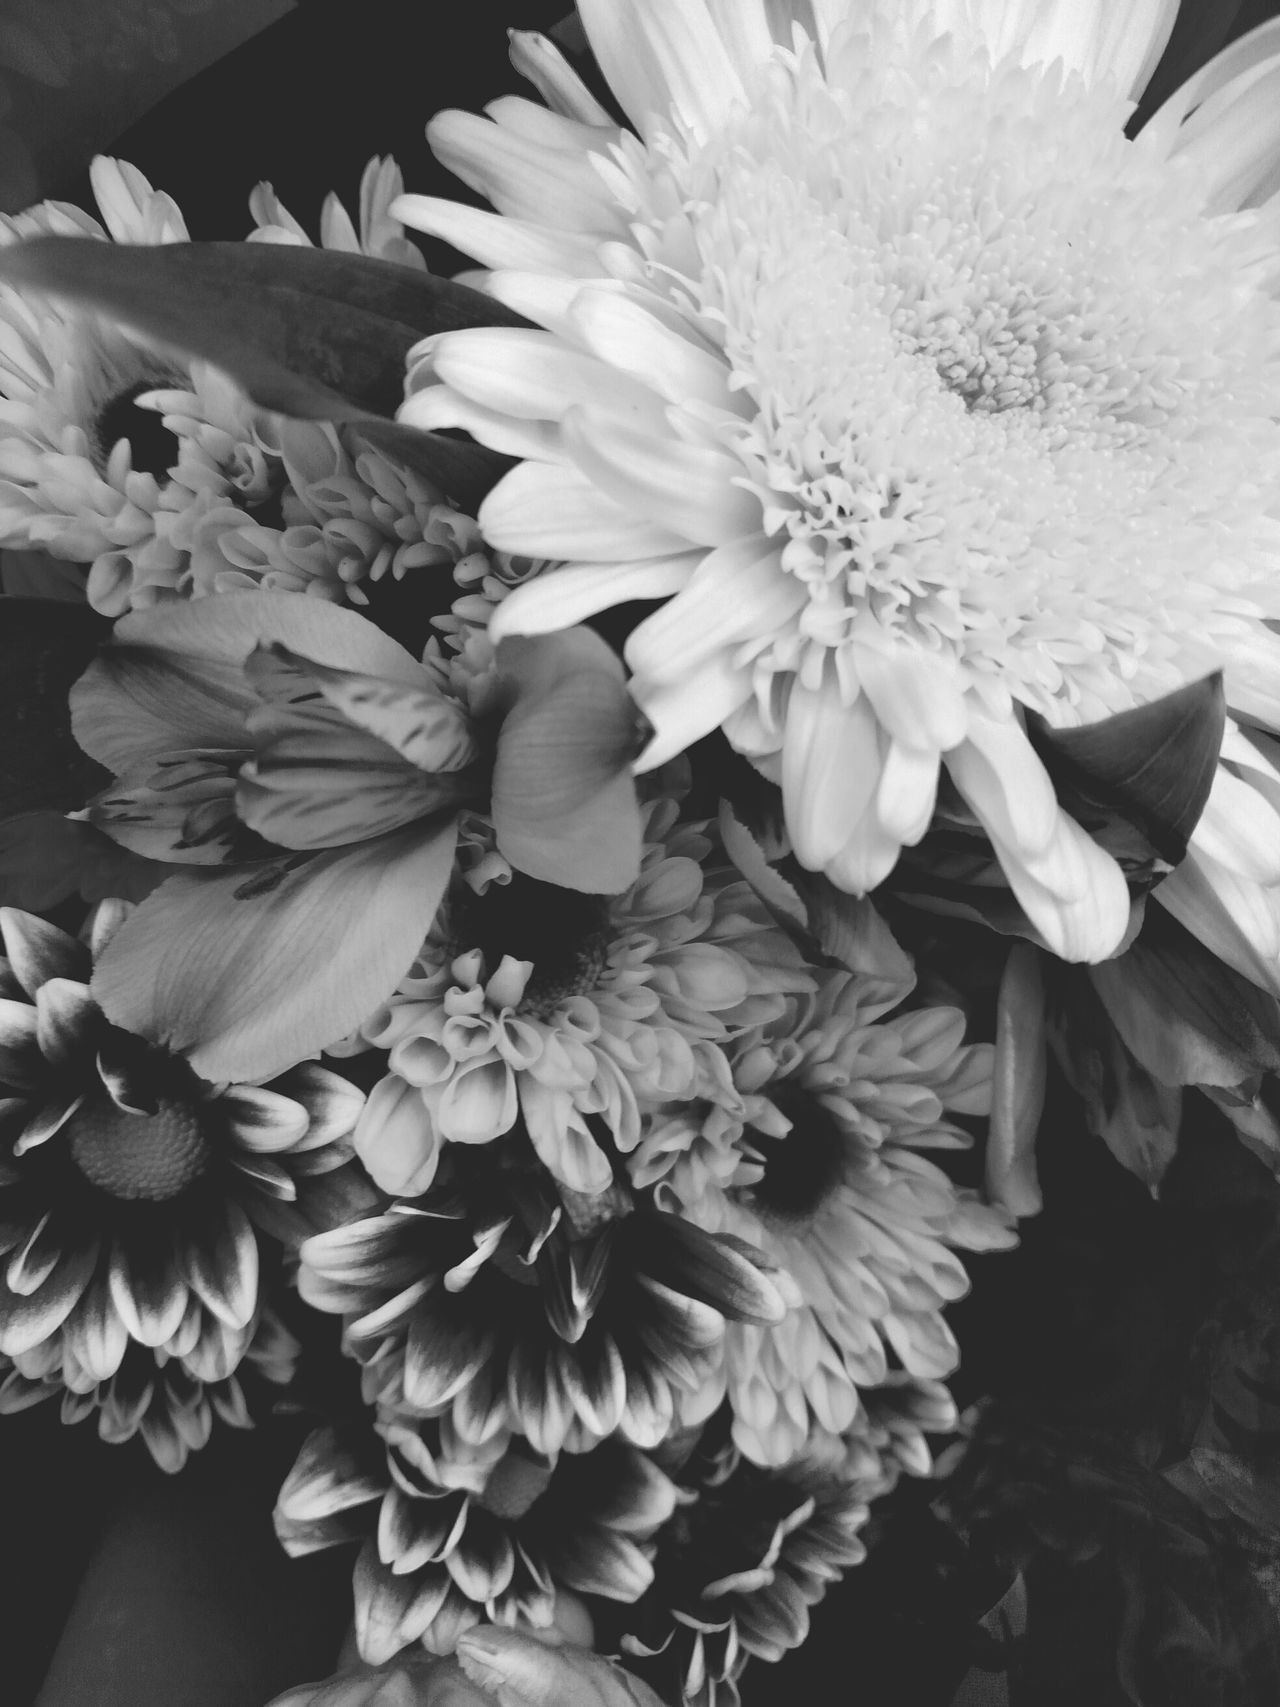 Flowerpower Flower Collection Flower Porn Flower Photography Things I Love Black And White Photography Black And White Flower Collection Black And White Collection  Eyeem Monochrome Monochrome _ Collection